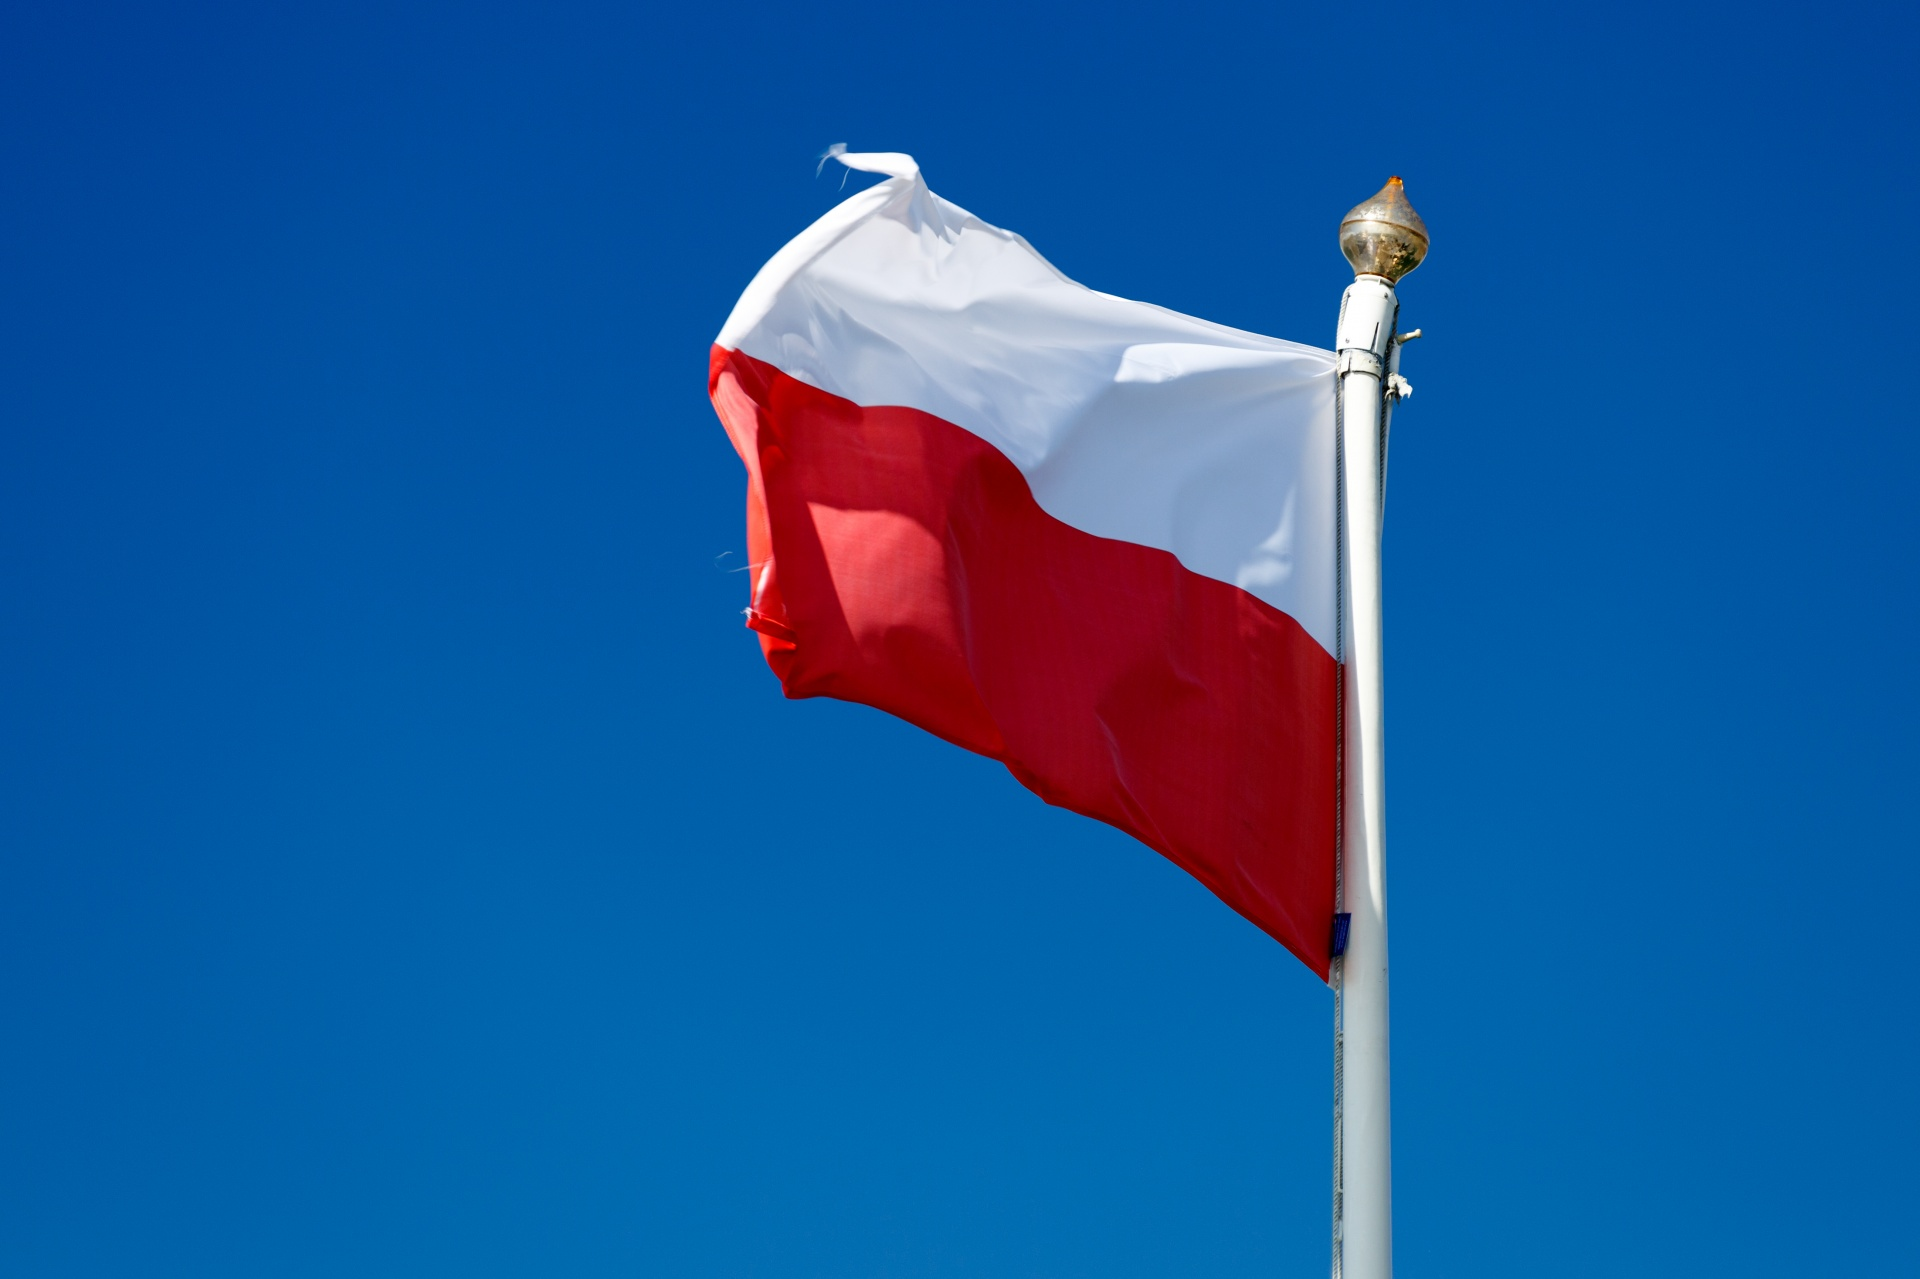 polish flag in the sky 1443282322Dgf